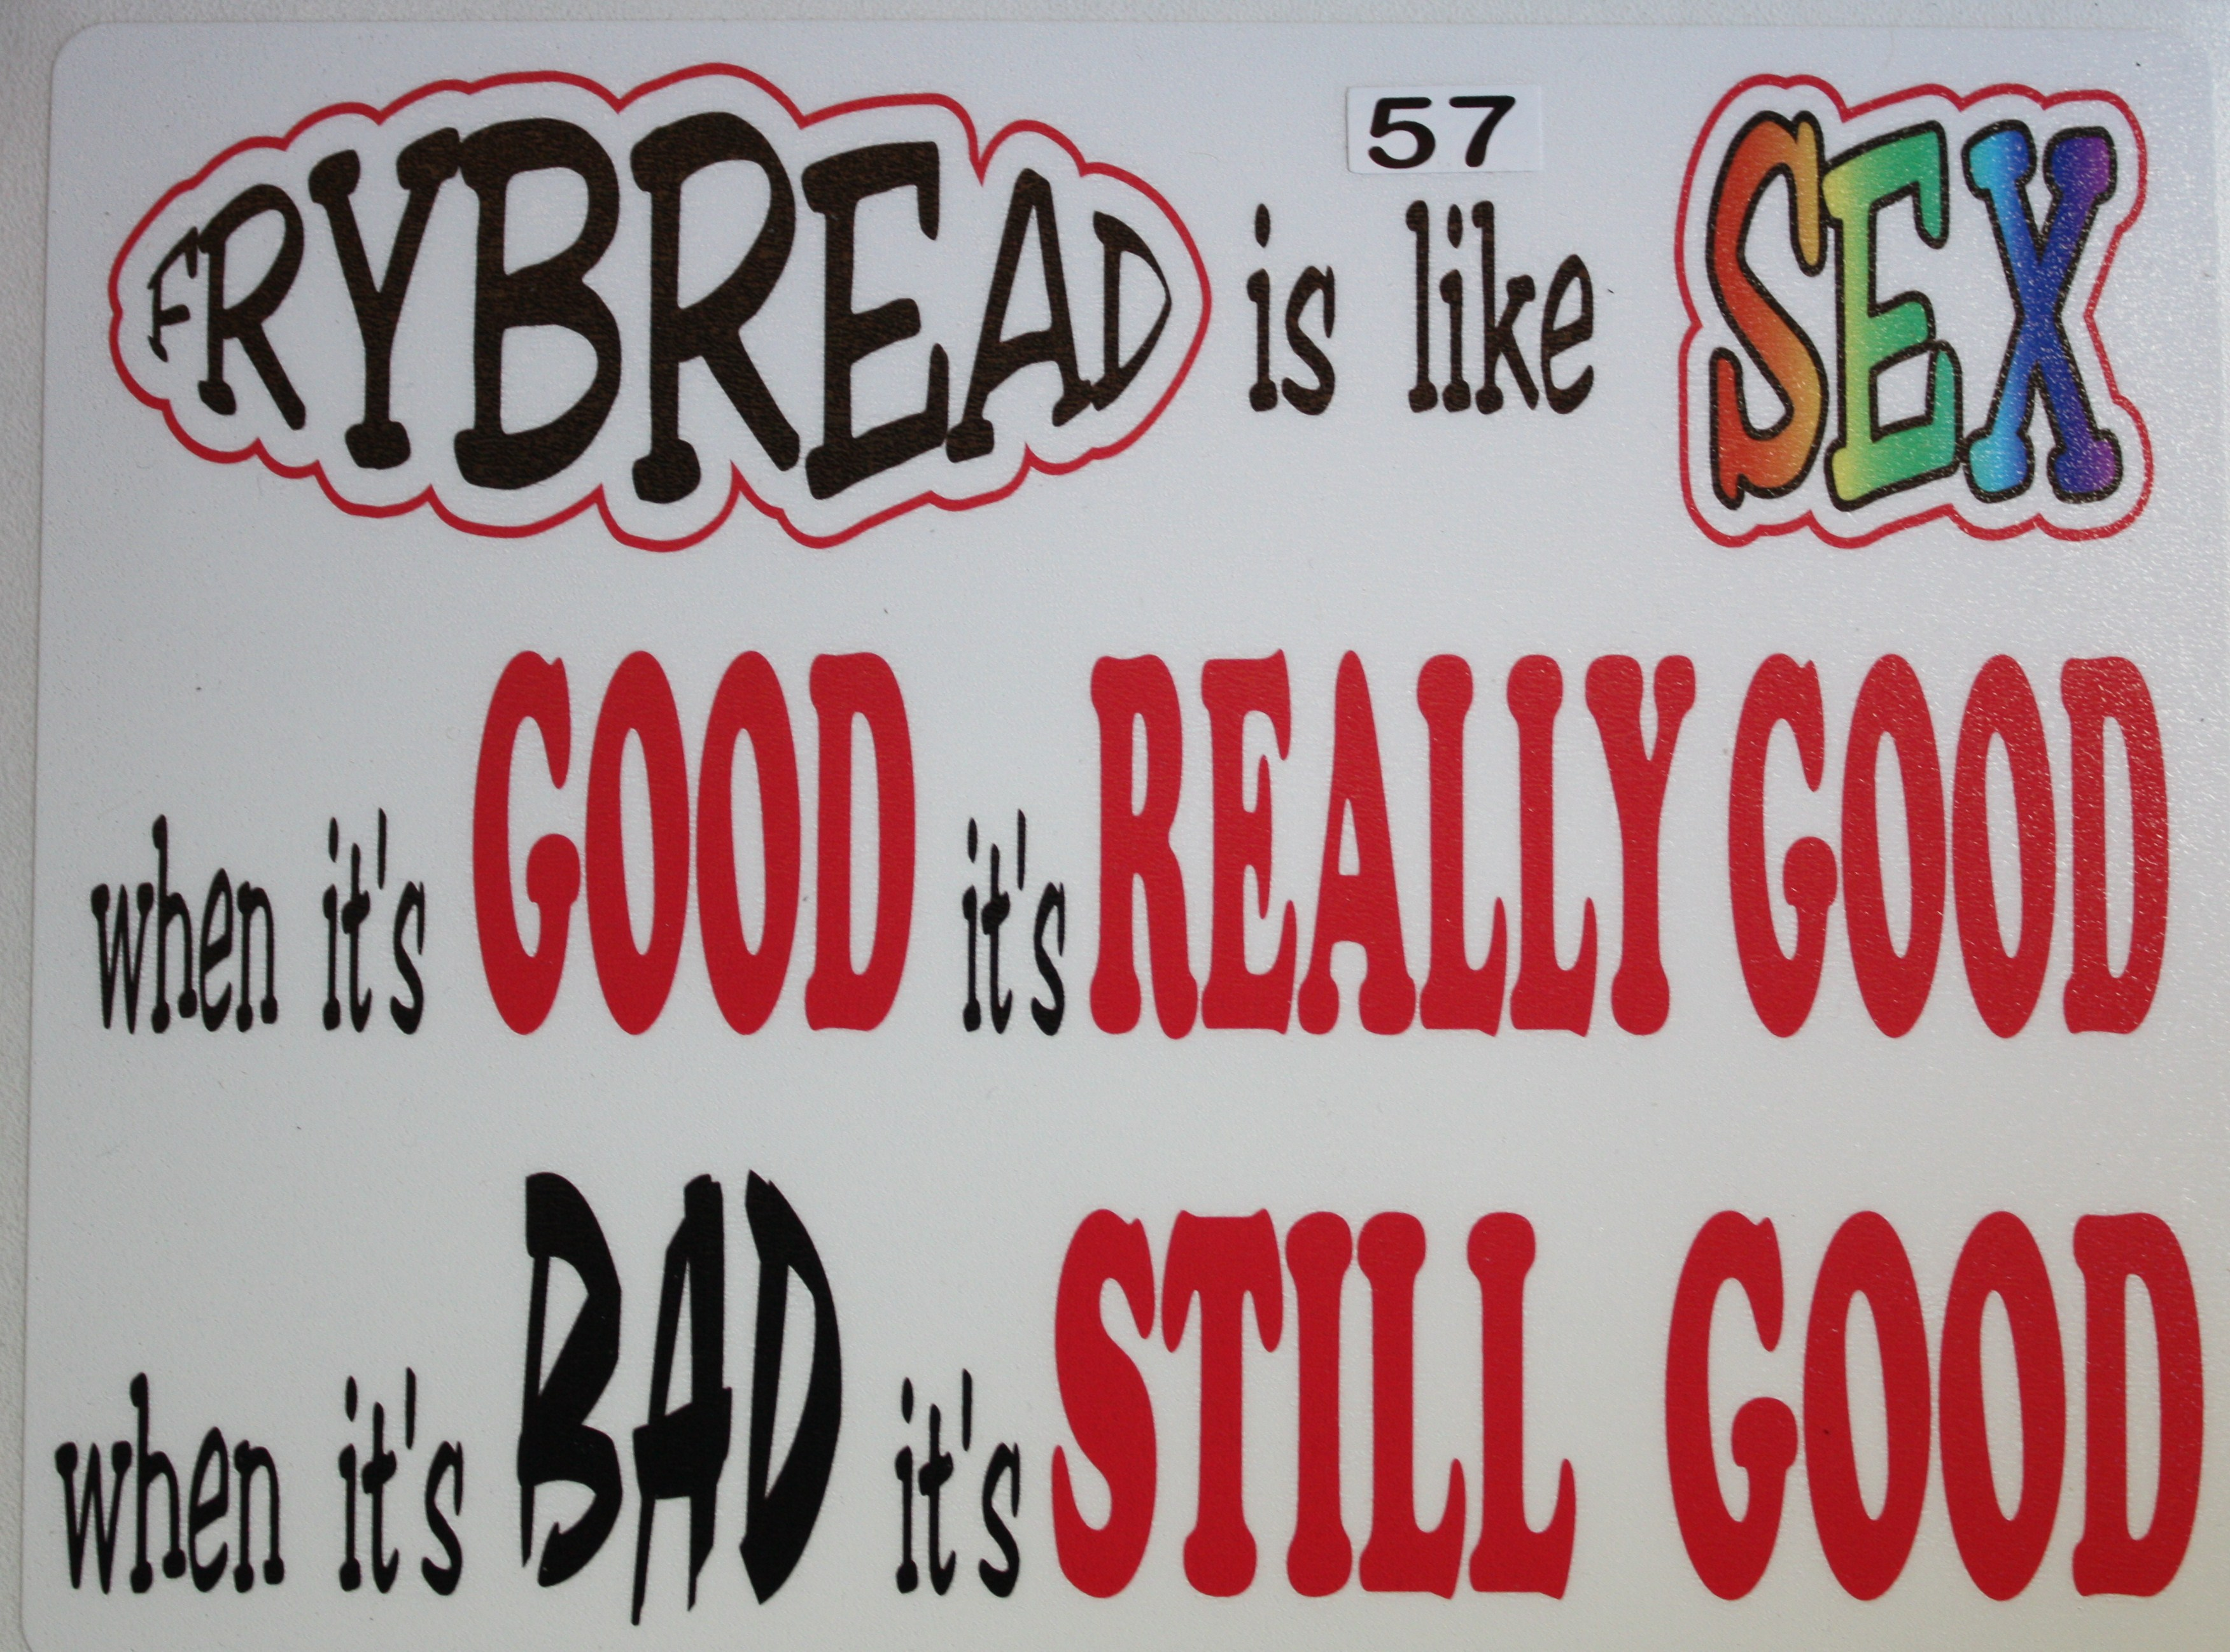 Frybread is Good Decal #57